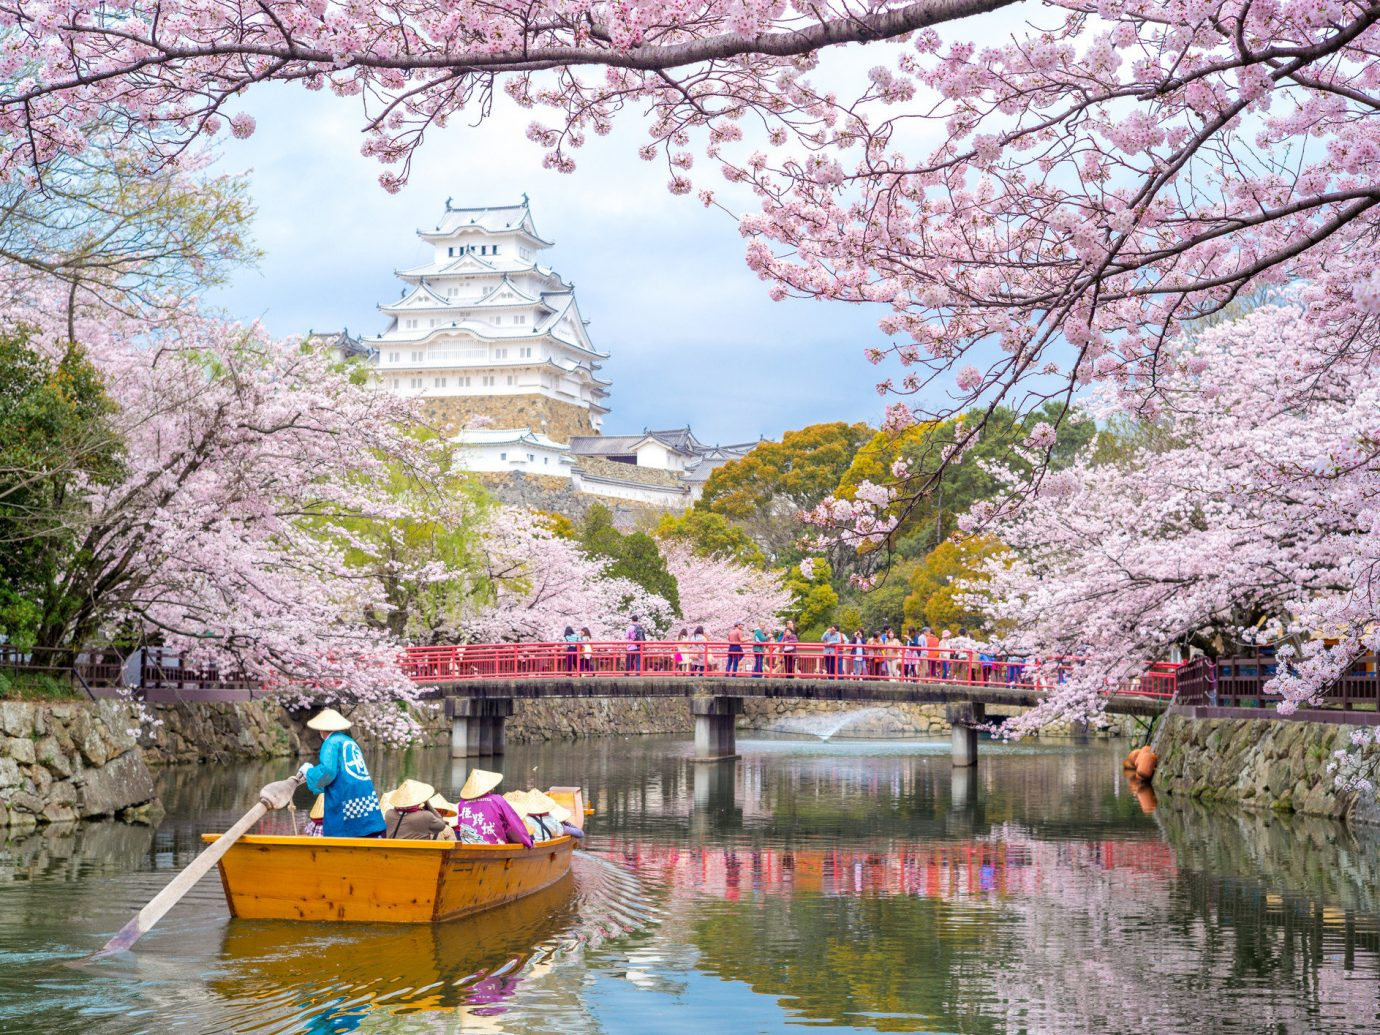 Arts + Culture Festivals + Events Hotels Offbeat Travel Tips Trip Ideas tree water outdoor River Boat flower cherry blossom plant season blossom yellow traveling colorful colored